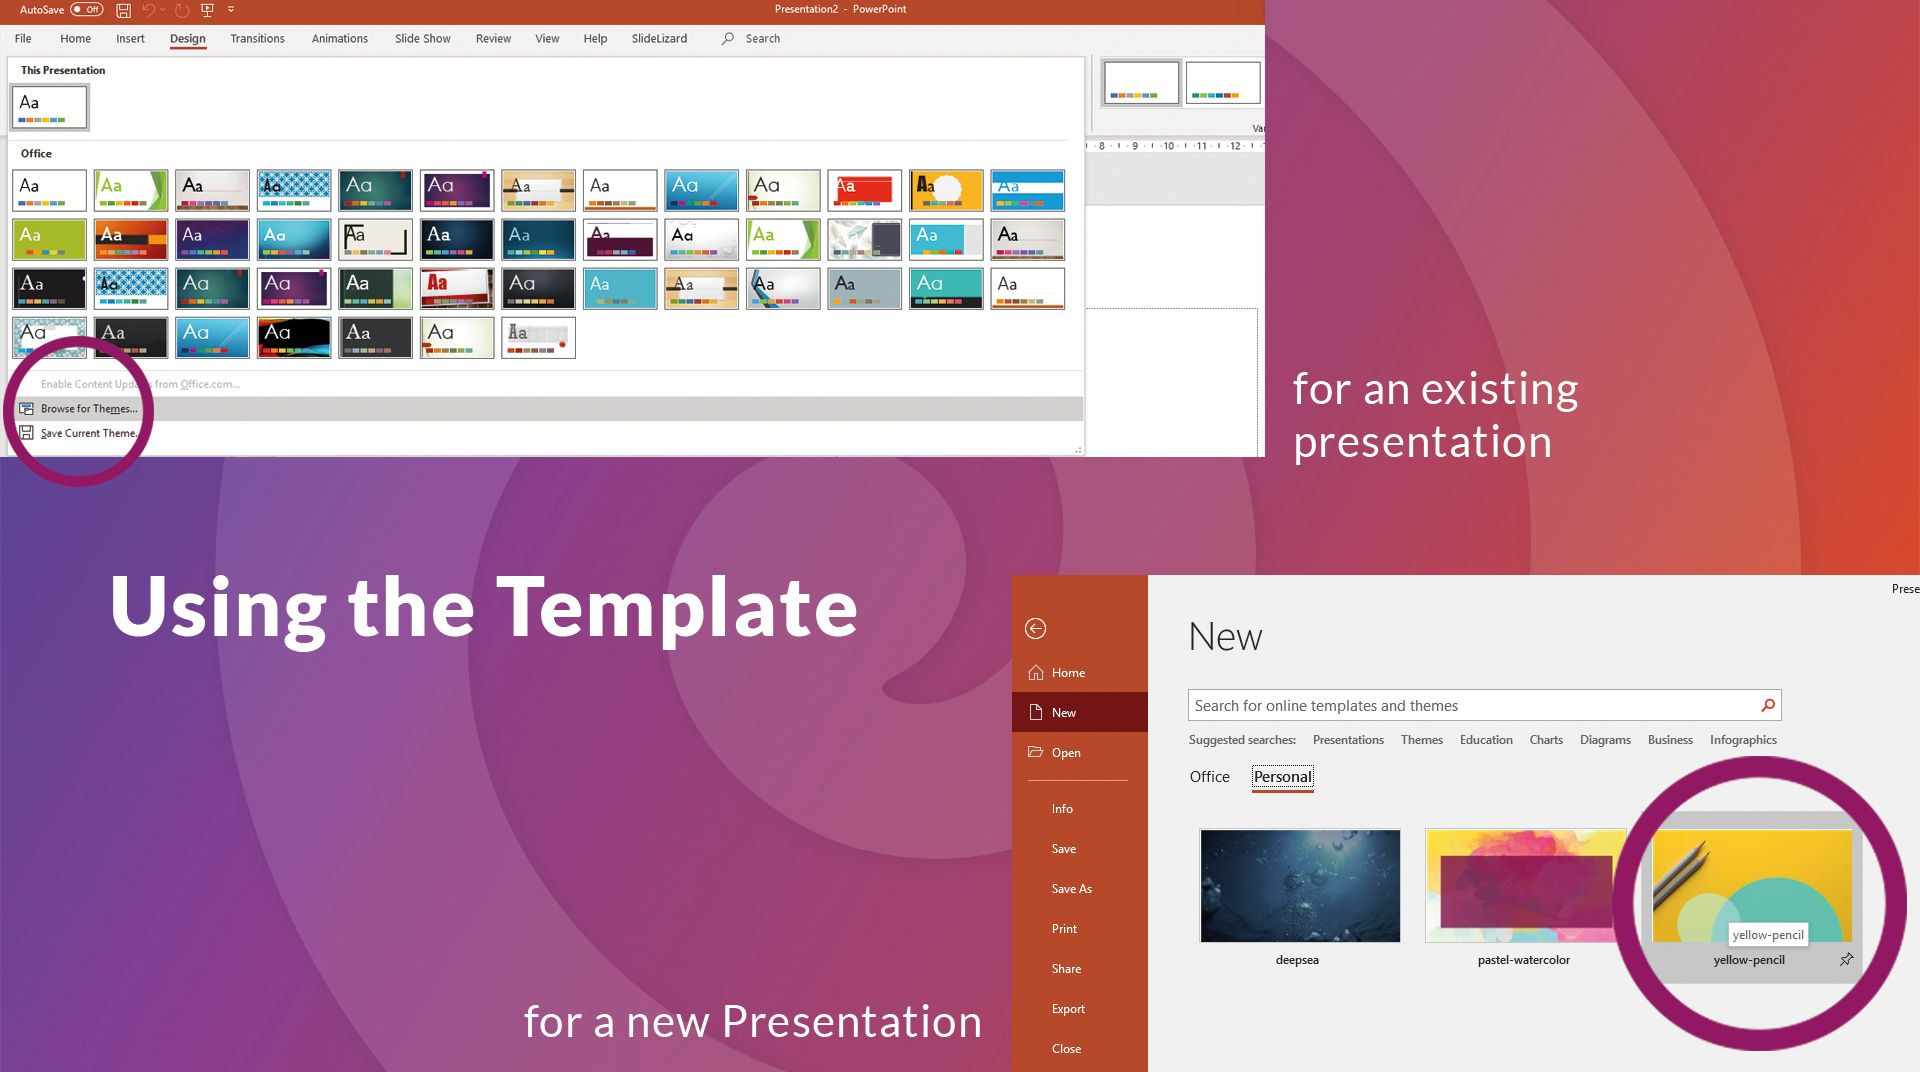 The Extraordinary How To Create Your Own Powerpoint Template 2020 Slidelizard For How To Save In 2020 Powerpoint Templates Business Plan Template Business Template